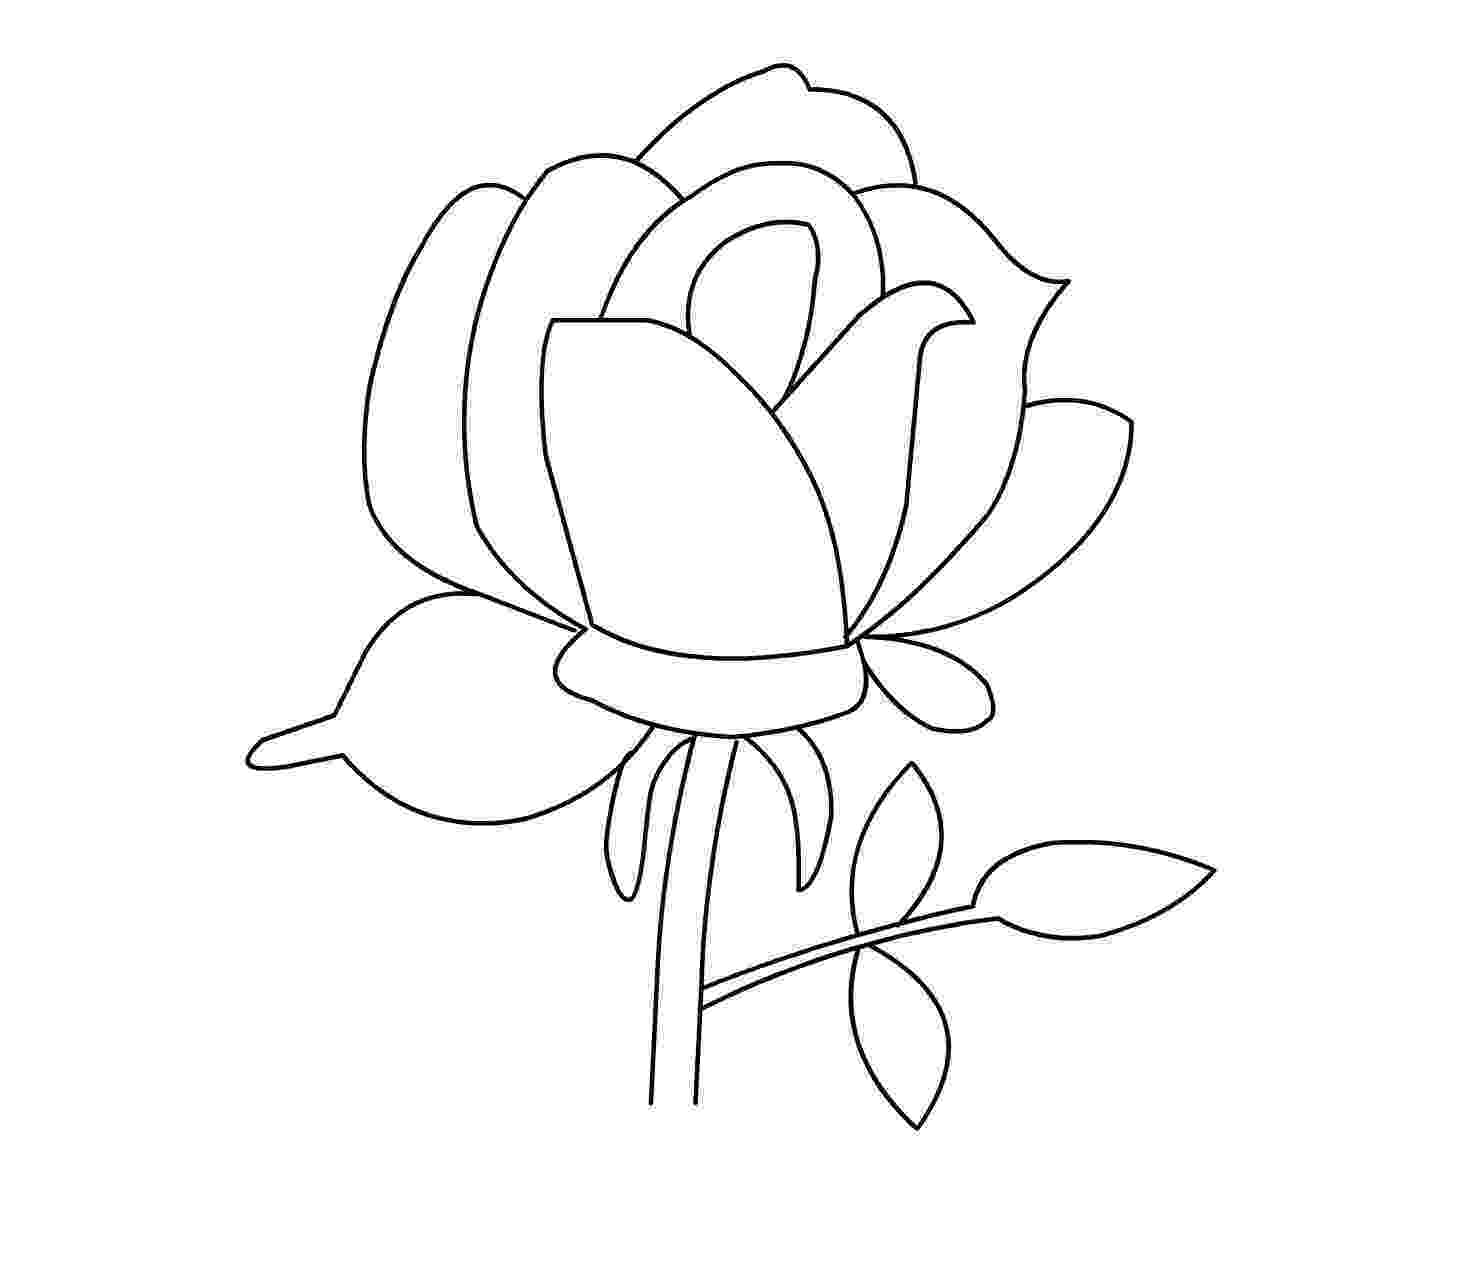 coloring roses free printable roses coloring pages for kids coloring roses 1 3